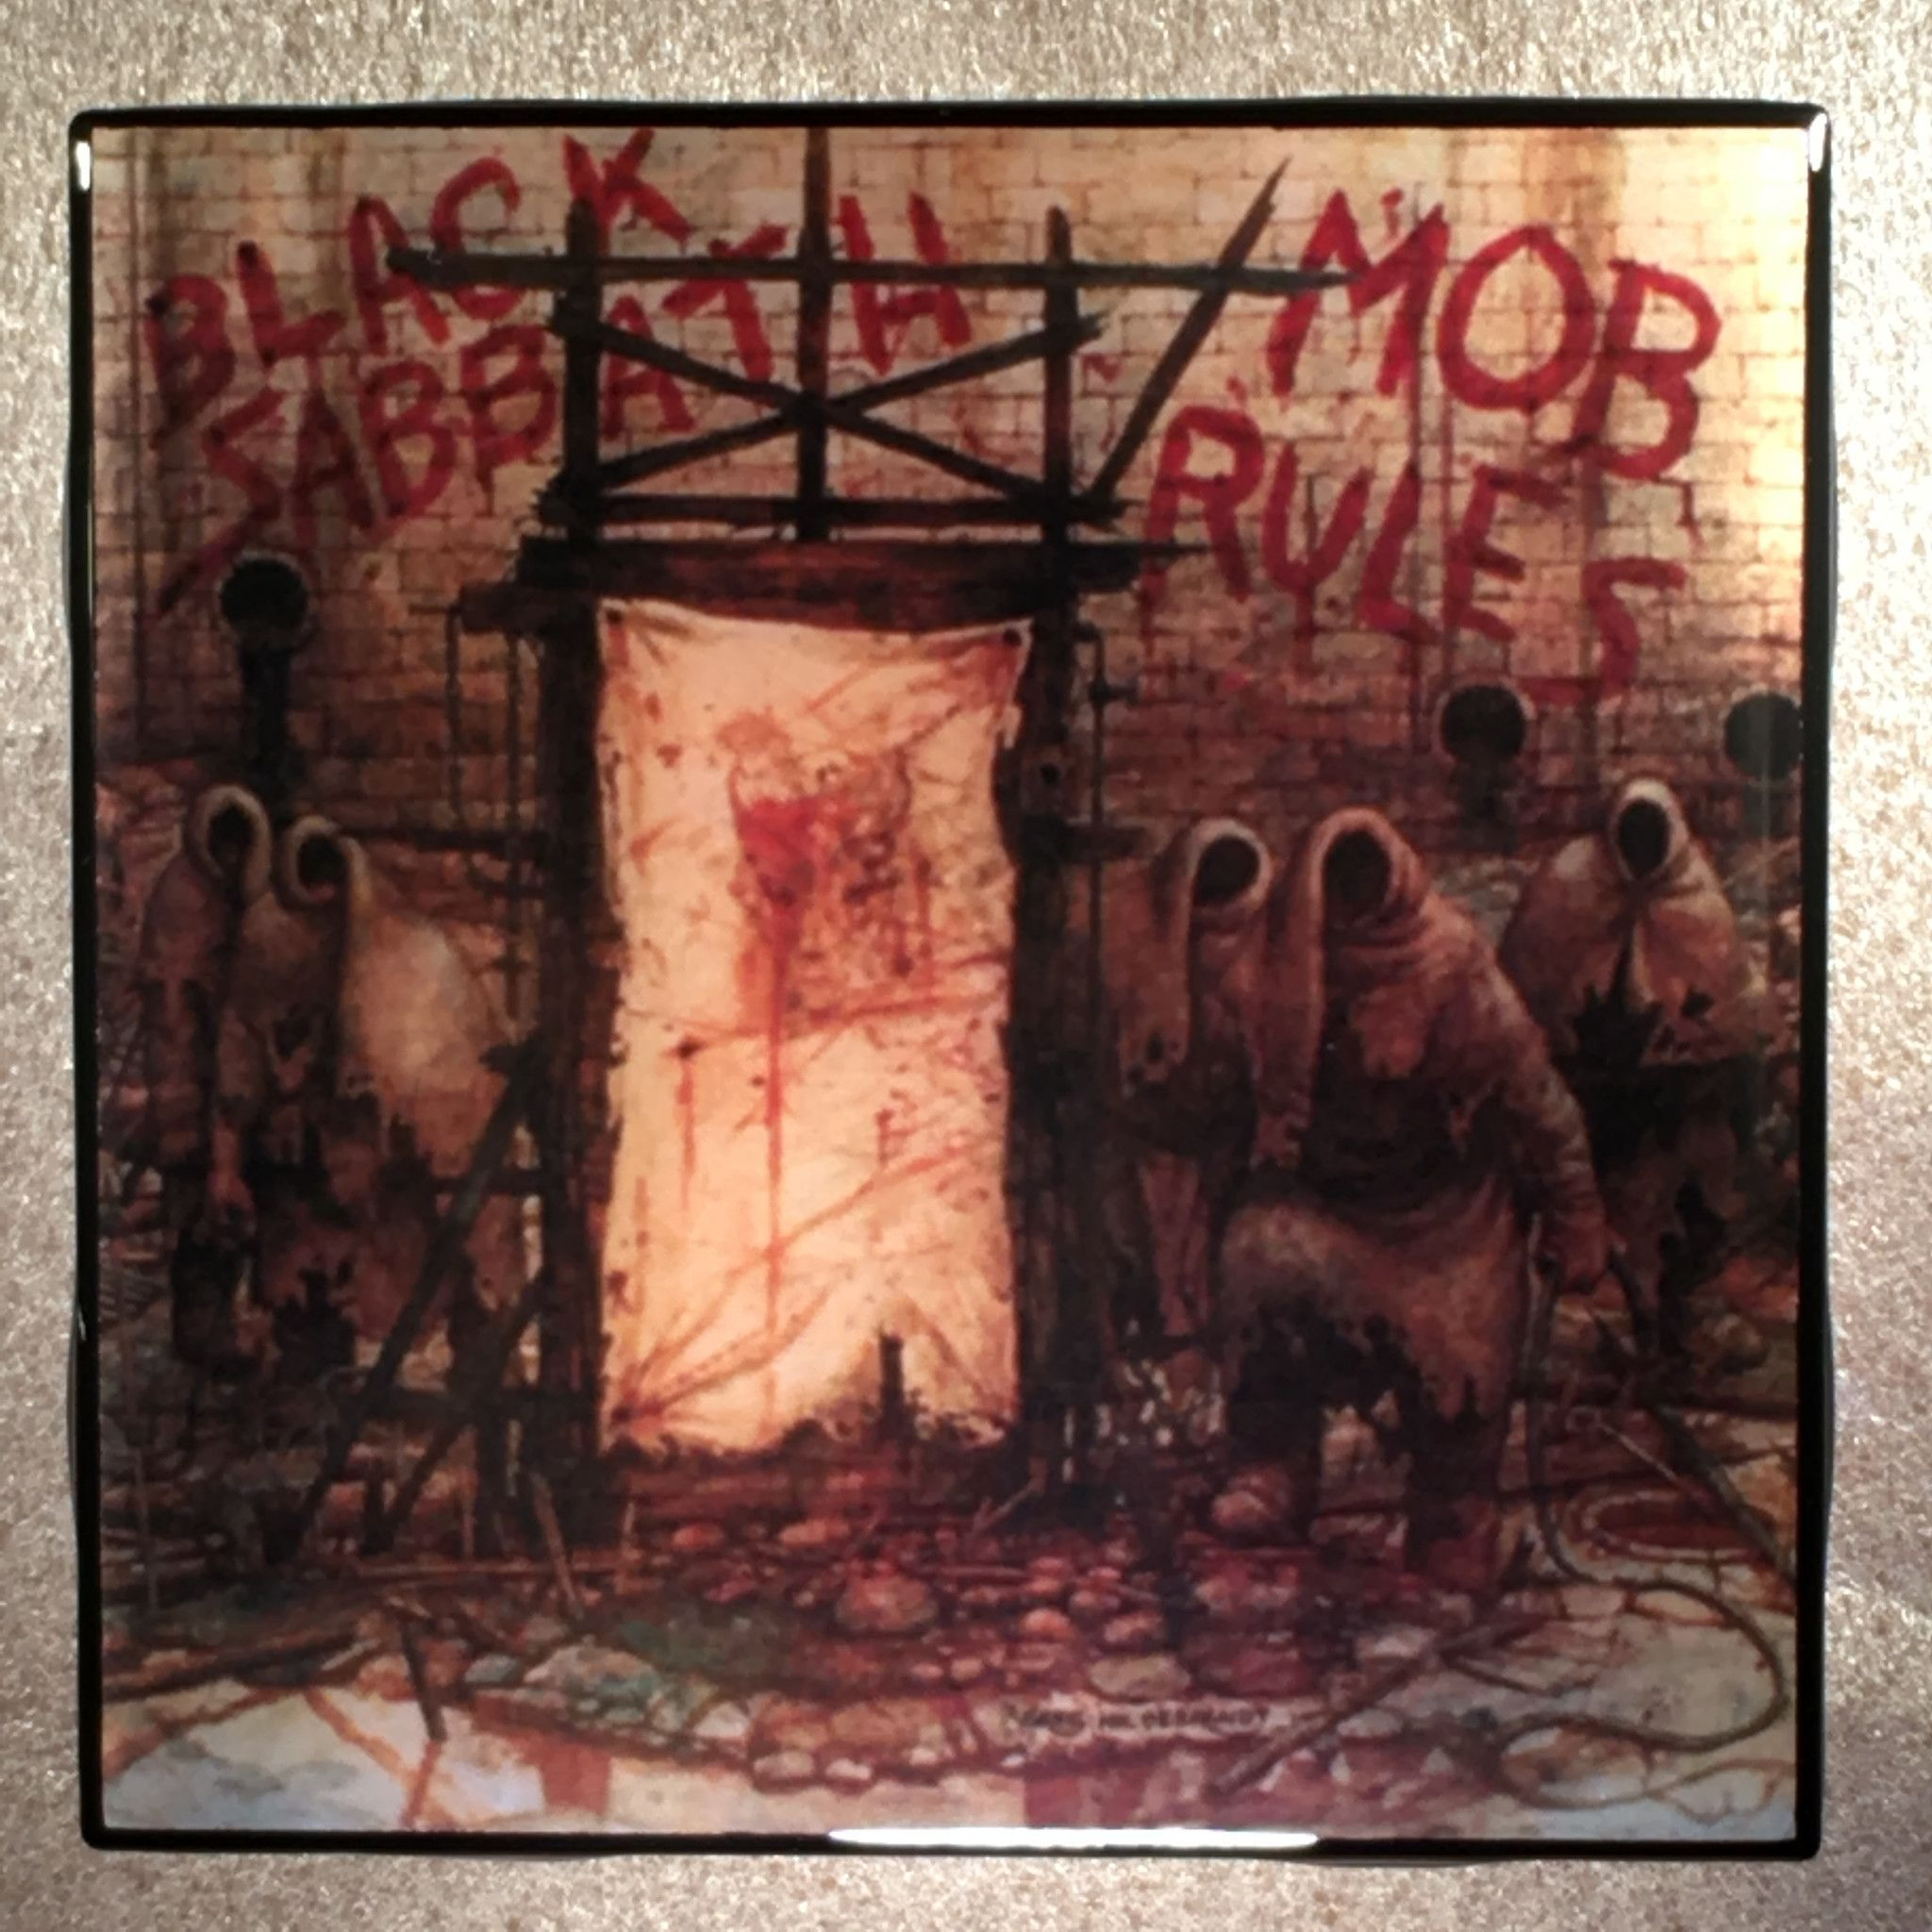 BLACK SABBATH Mob Rules Coaster Record Cover Ceramic Tile